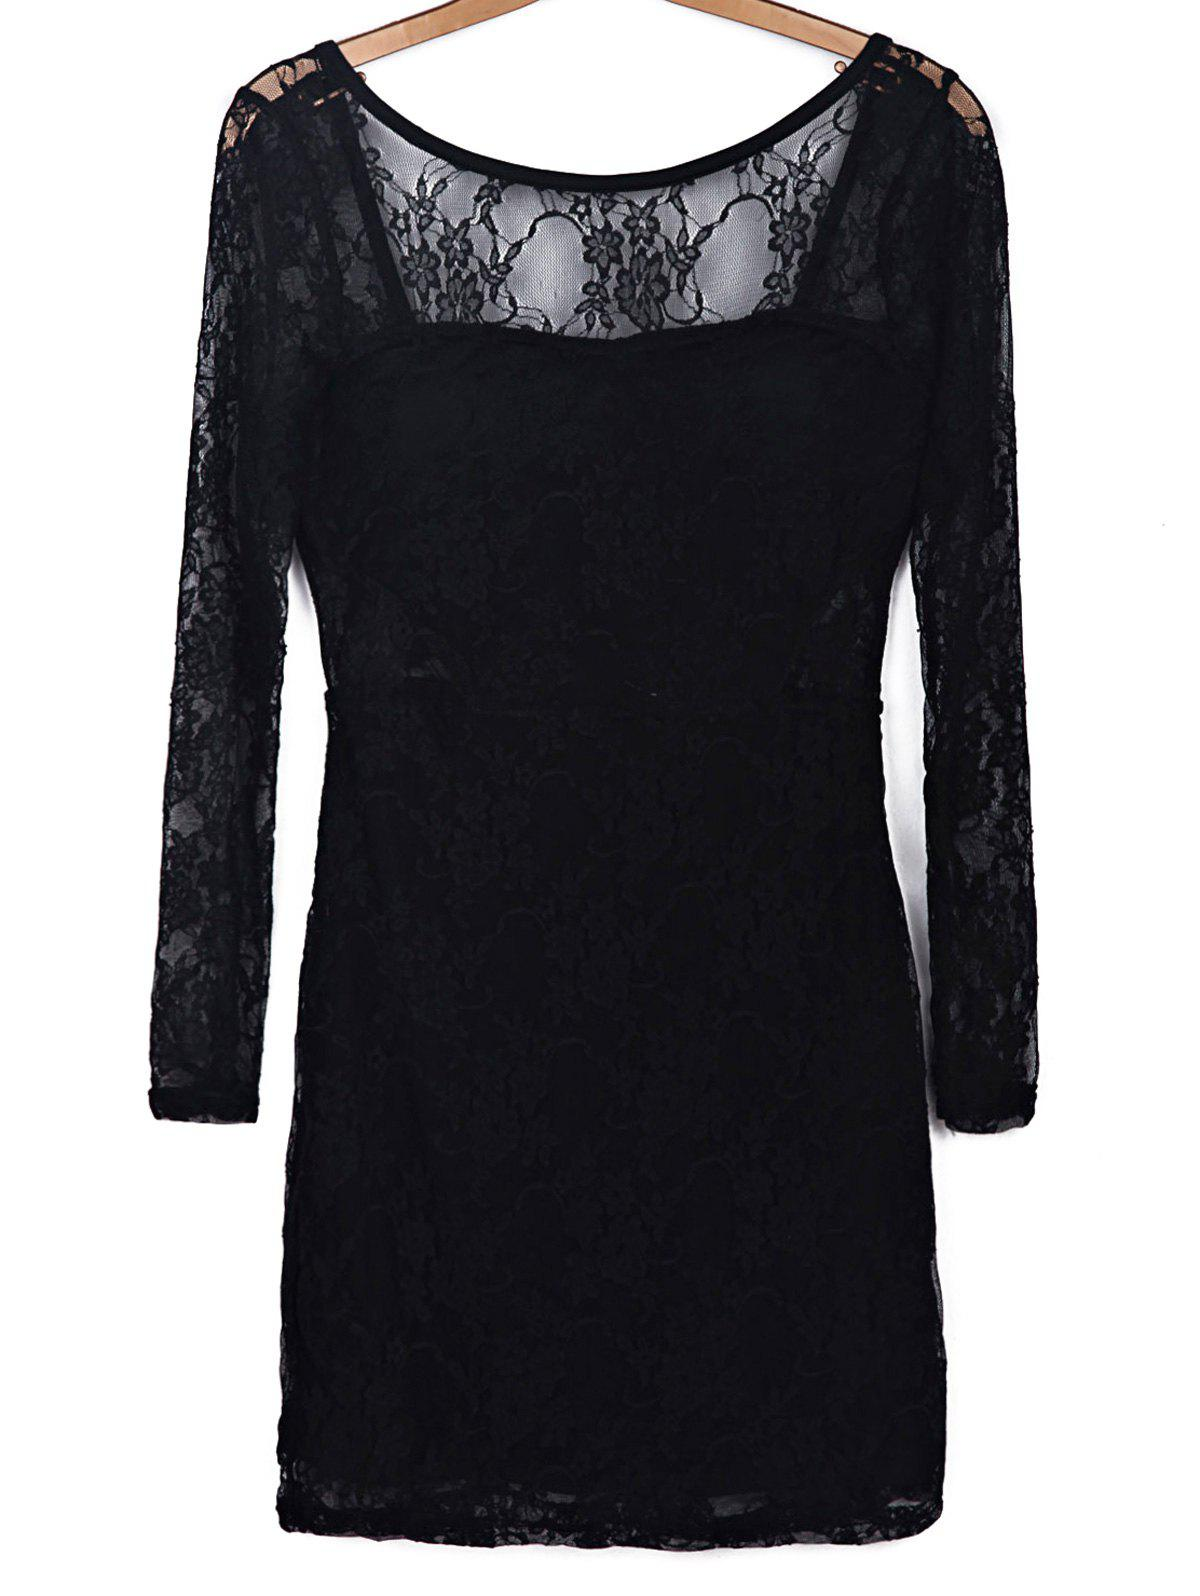 Trendy Black Hollow Out Long Sleeve Backless Bodycon Lace Dress For Women fashion black hollow out long sleeve backless bodycon lace dress for women